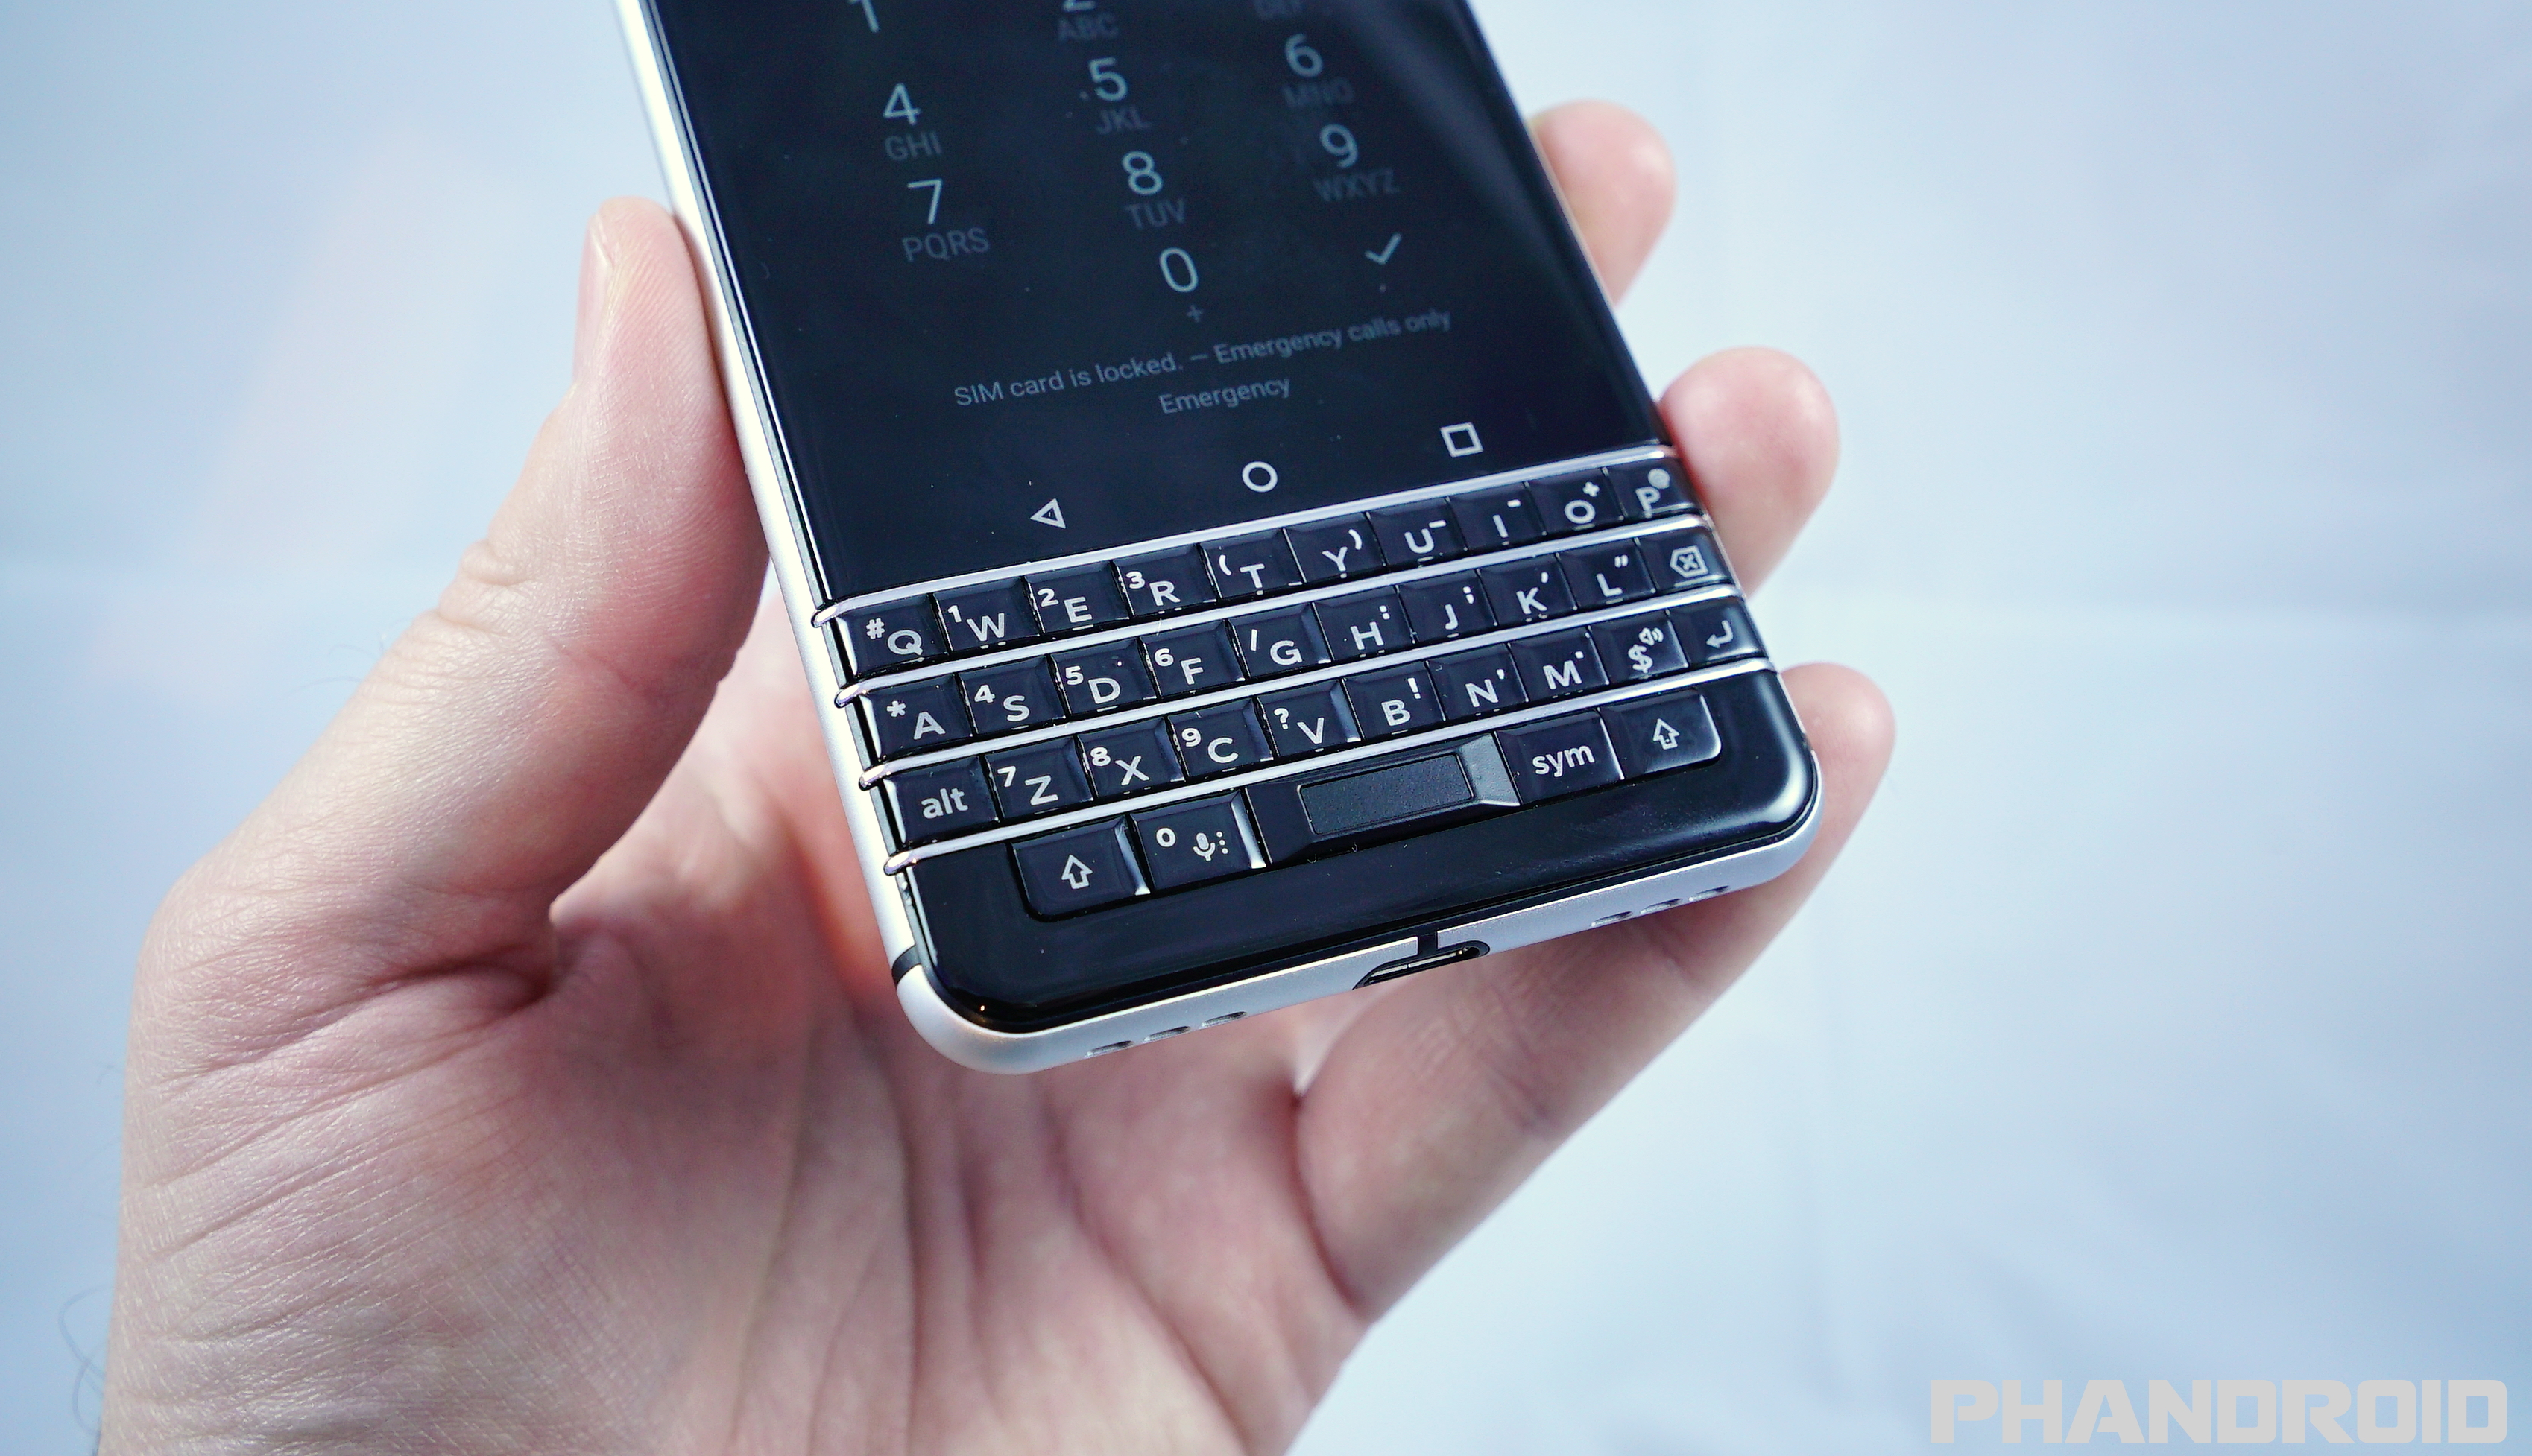 Blackberry Keyone Release Date For The Us And Canada Those In It Will Launch Unlocked Both Cdma Gsm Varieties Though Some Carriers Sprint Is Only Confirmed One Now Are Expected